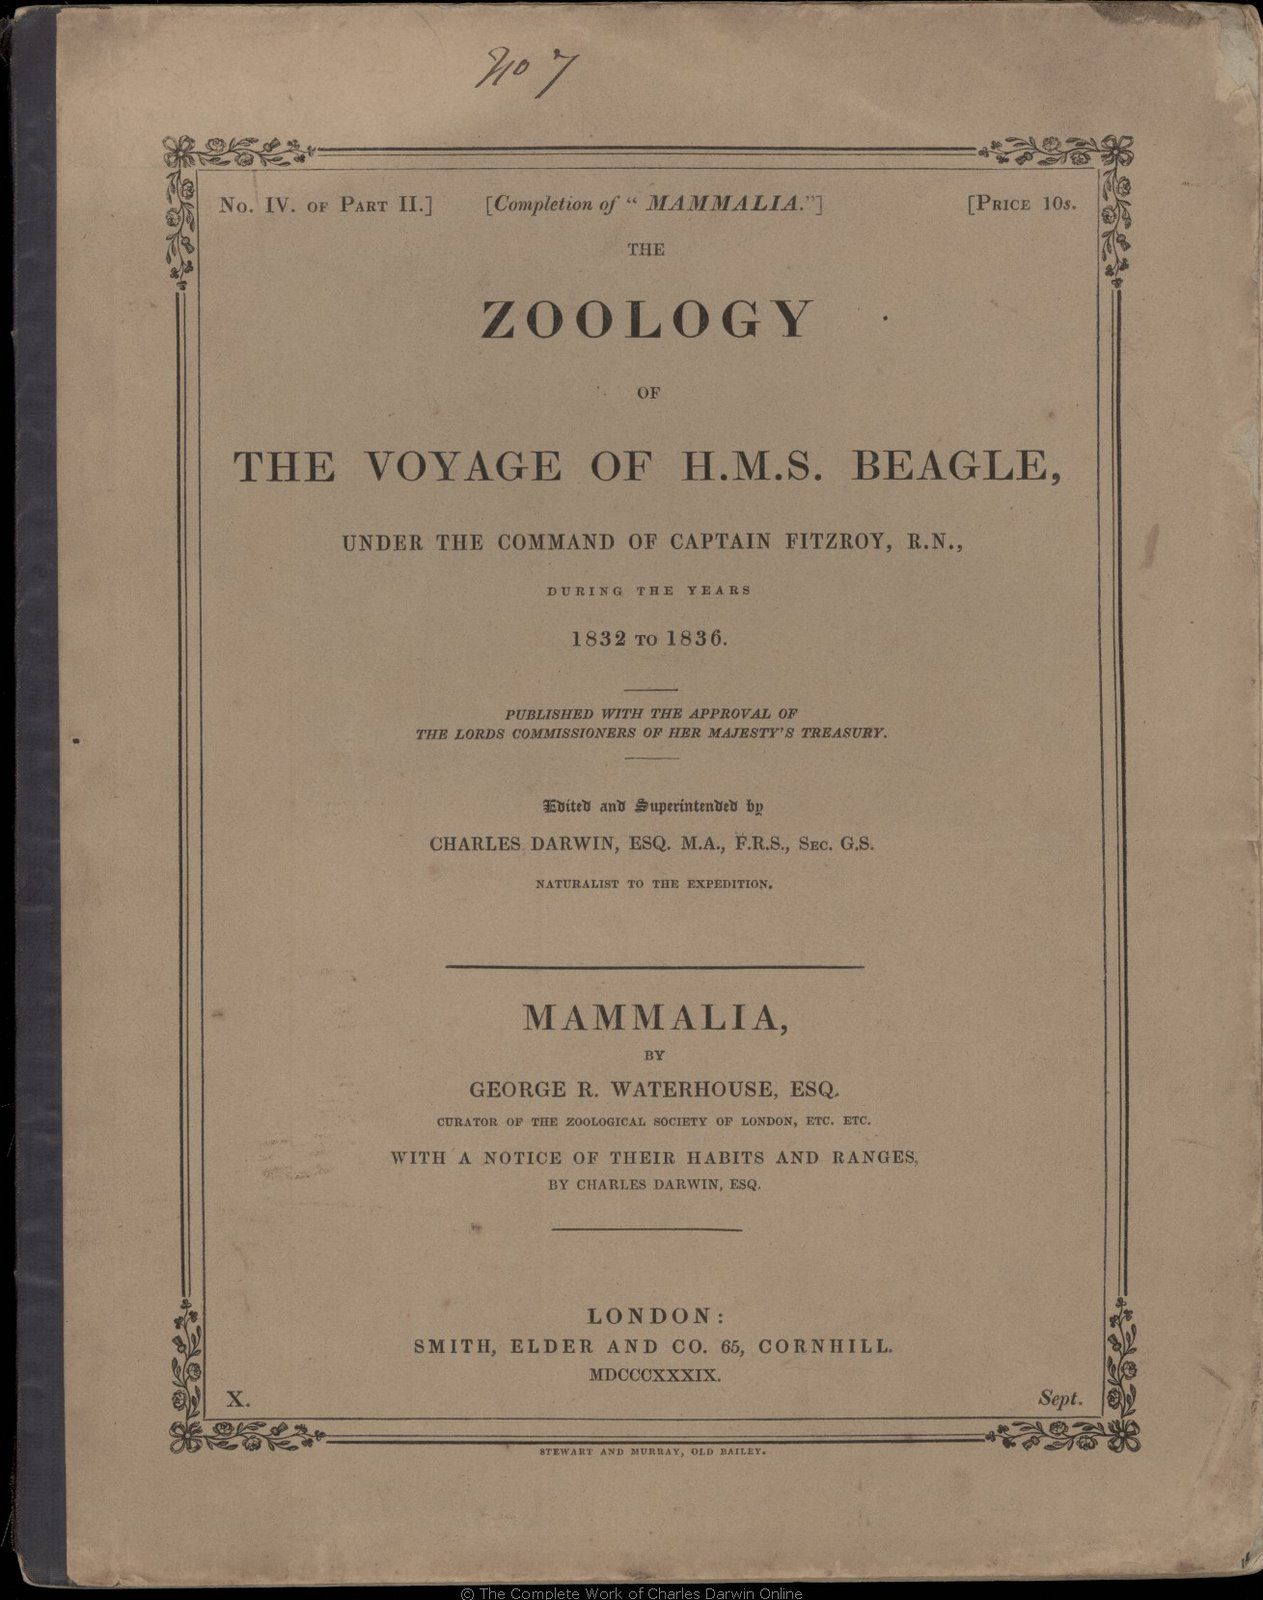 The zoology of the voyage of H. M. S. Beagle\' | Natural history ...